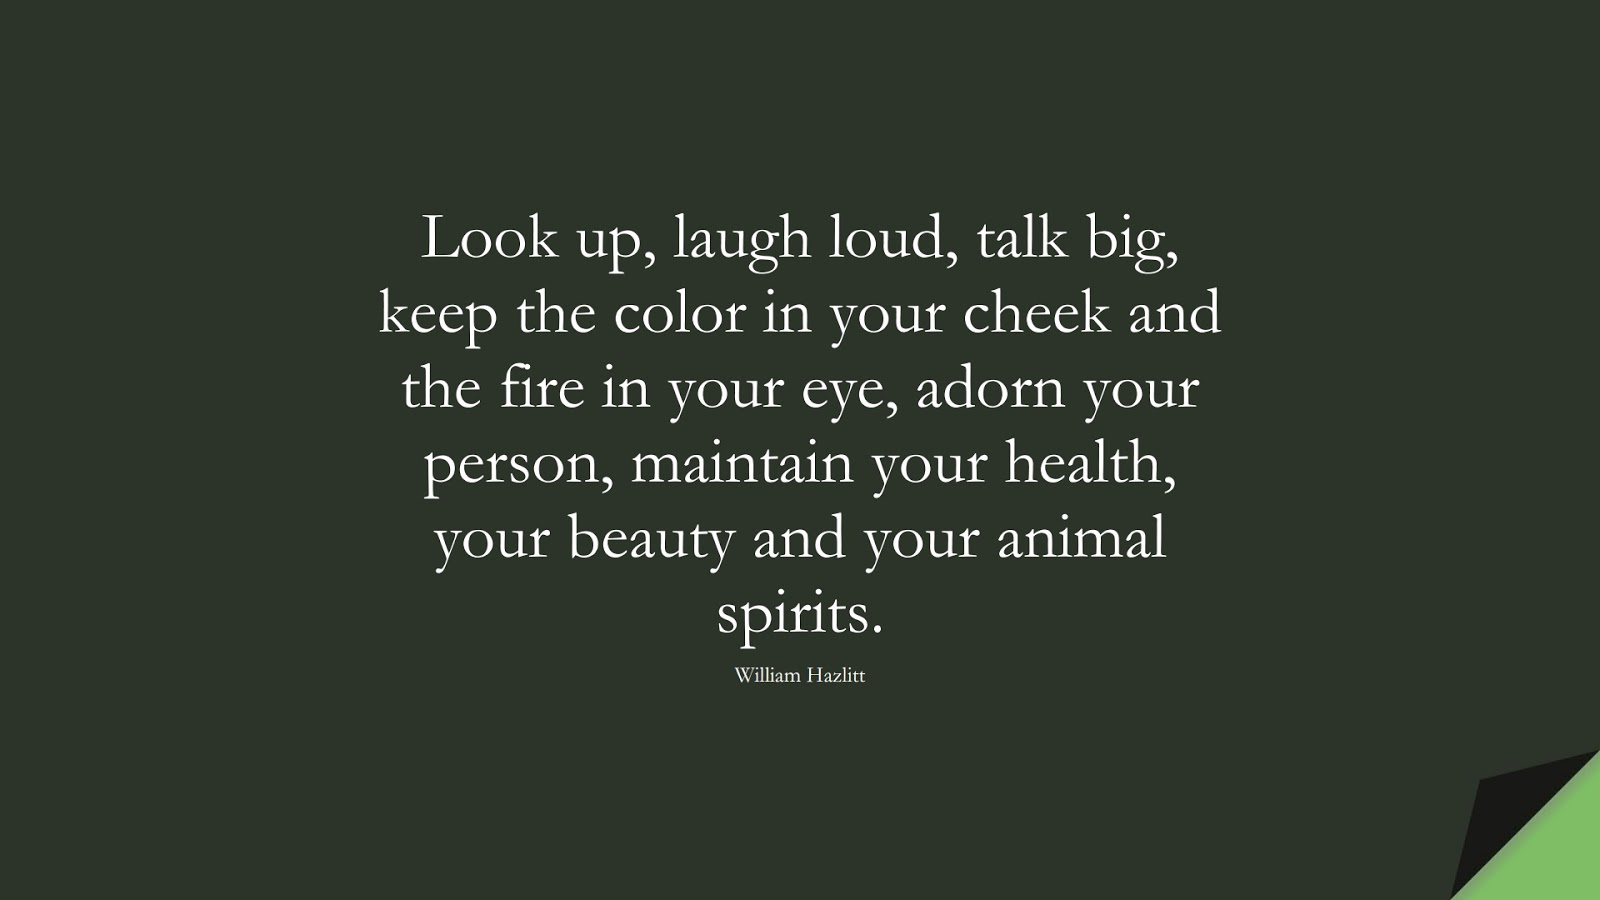 Look up, laugh loud, talk big, keep the color in your cheek and the fire in your eye, adorn your person, maintain your health, your beauty and your animal spirits. (William Hazlitt);  #HealthQuotes